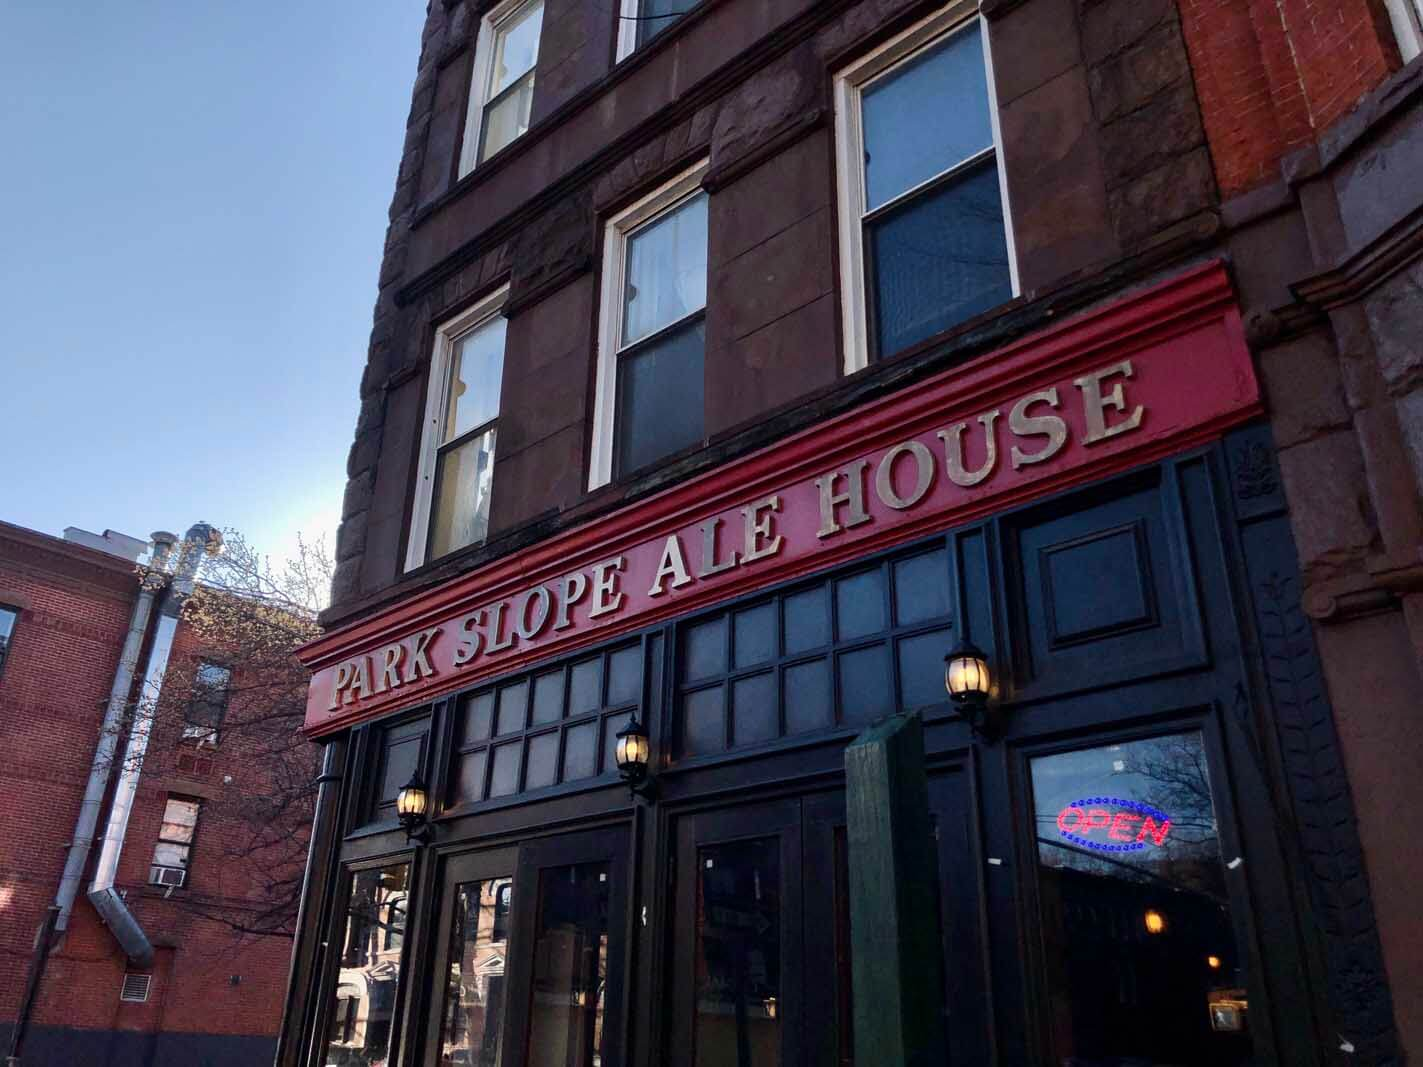 Park Slope Ale House in Brooklyn